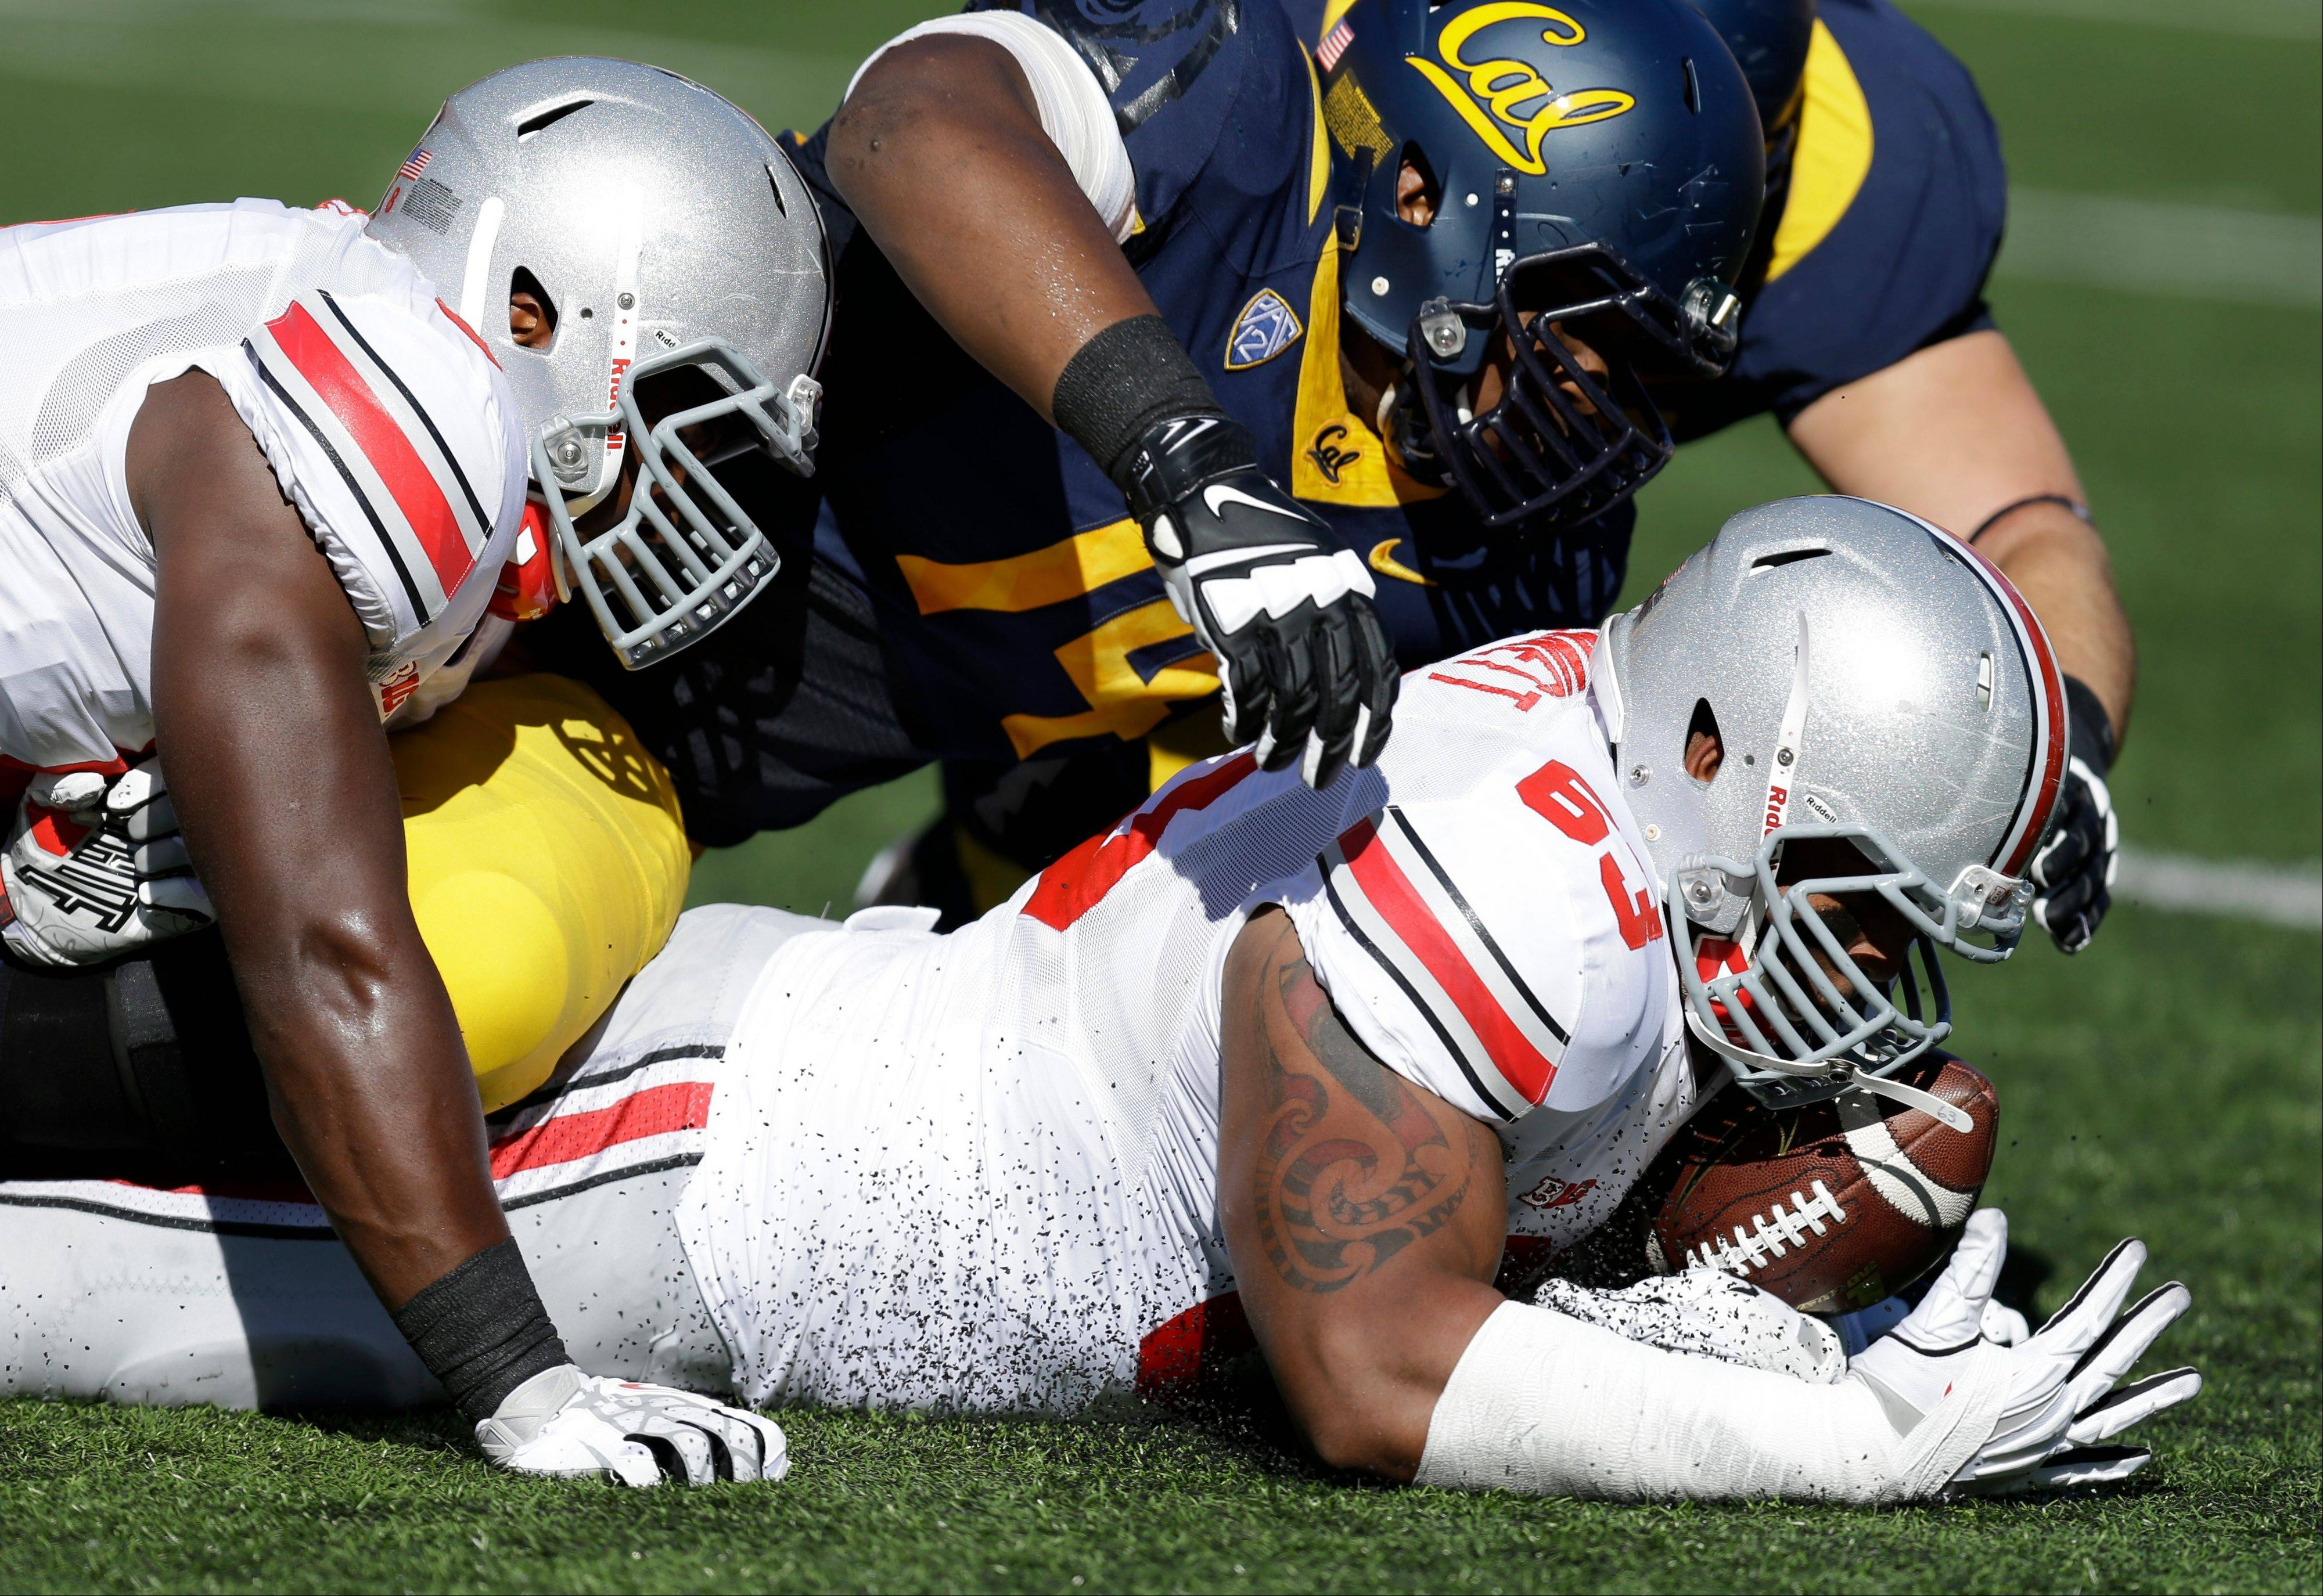 Ohio State's Michael Bennett recovers a fumble by Cal's Jared Goff during the first quarter last Saturday's game in Berkeley, Calif.